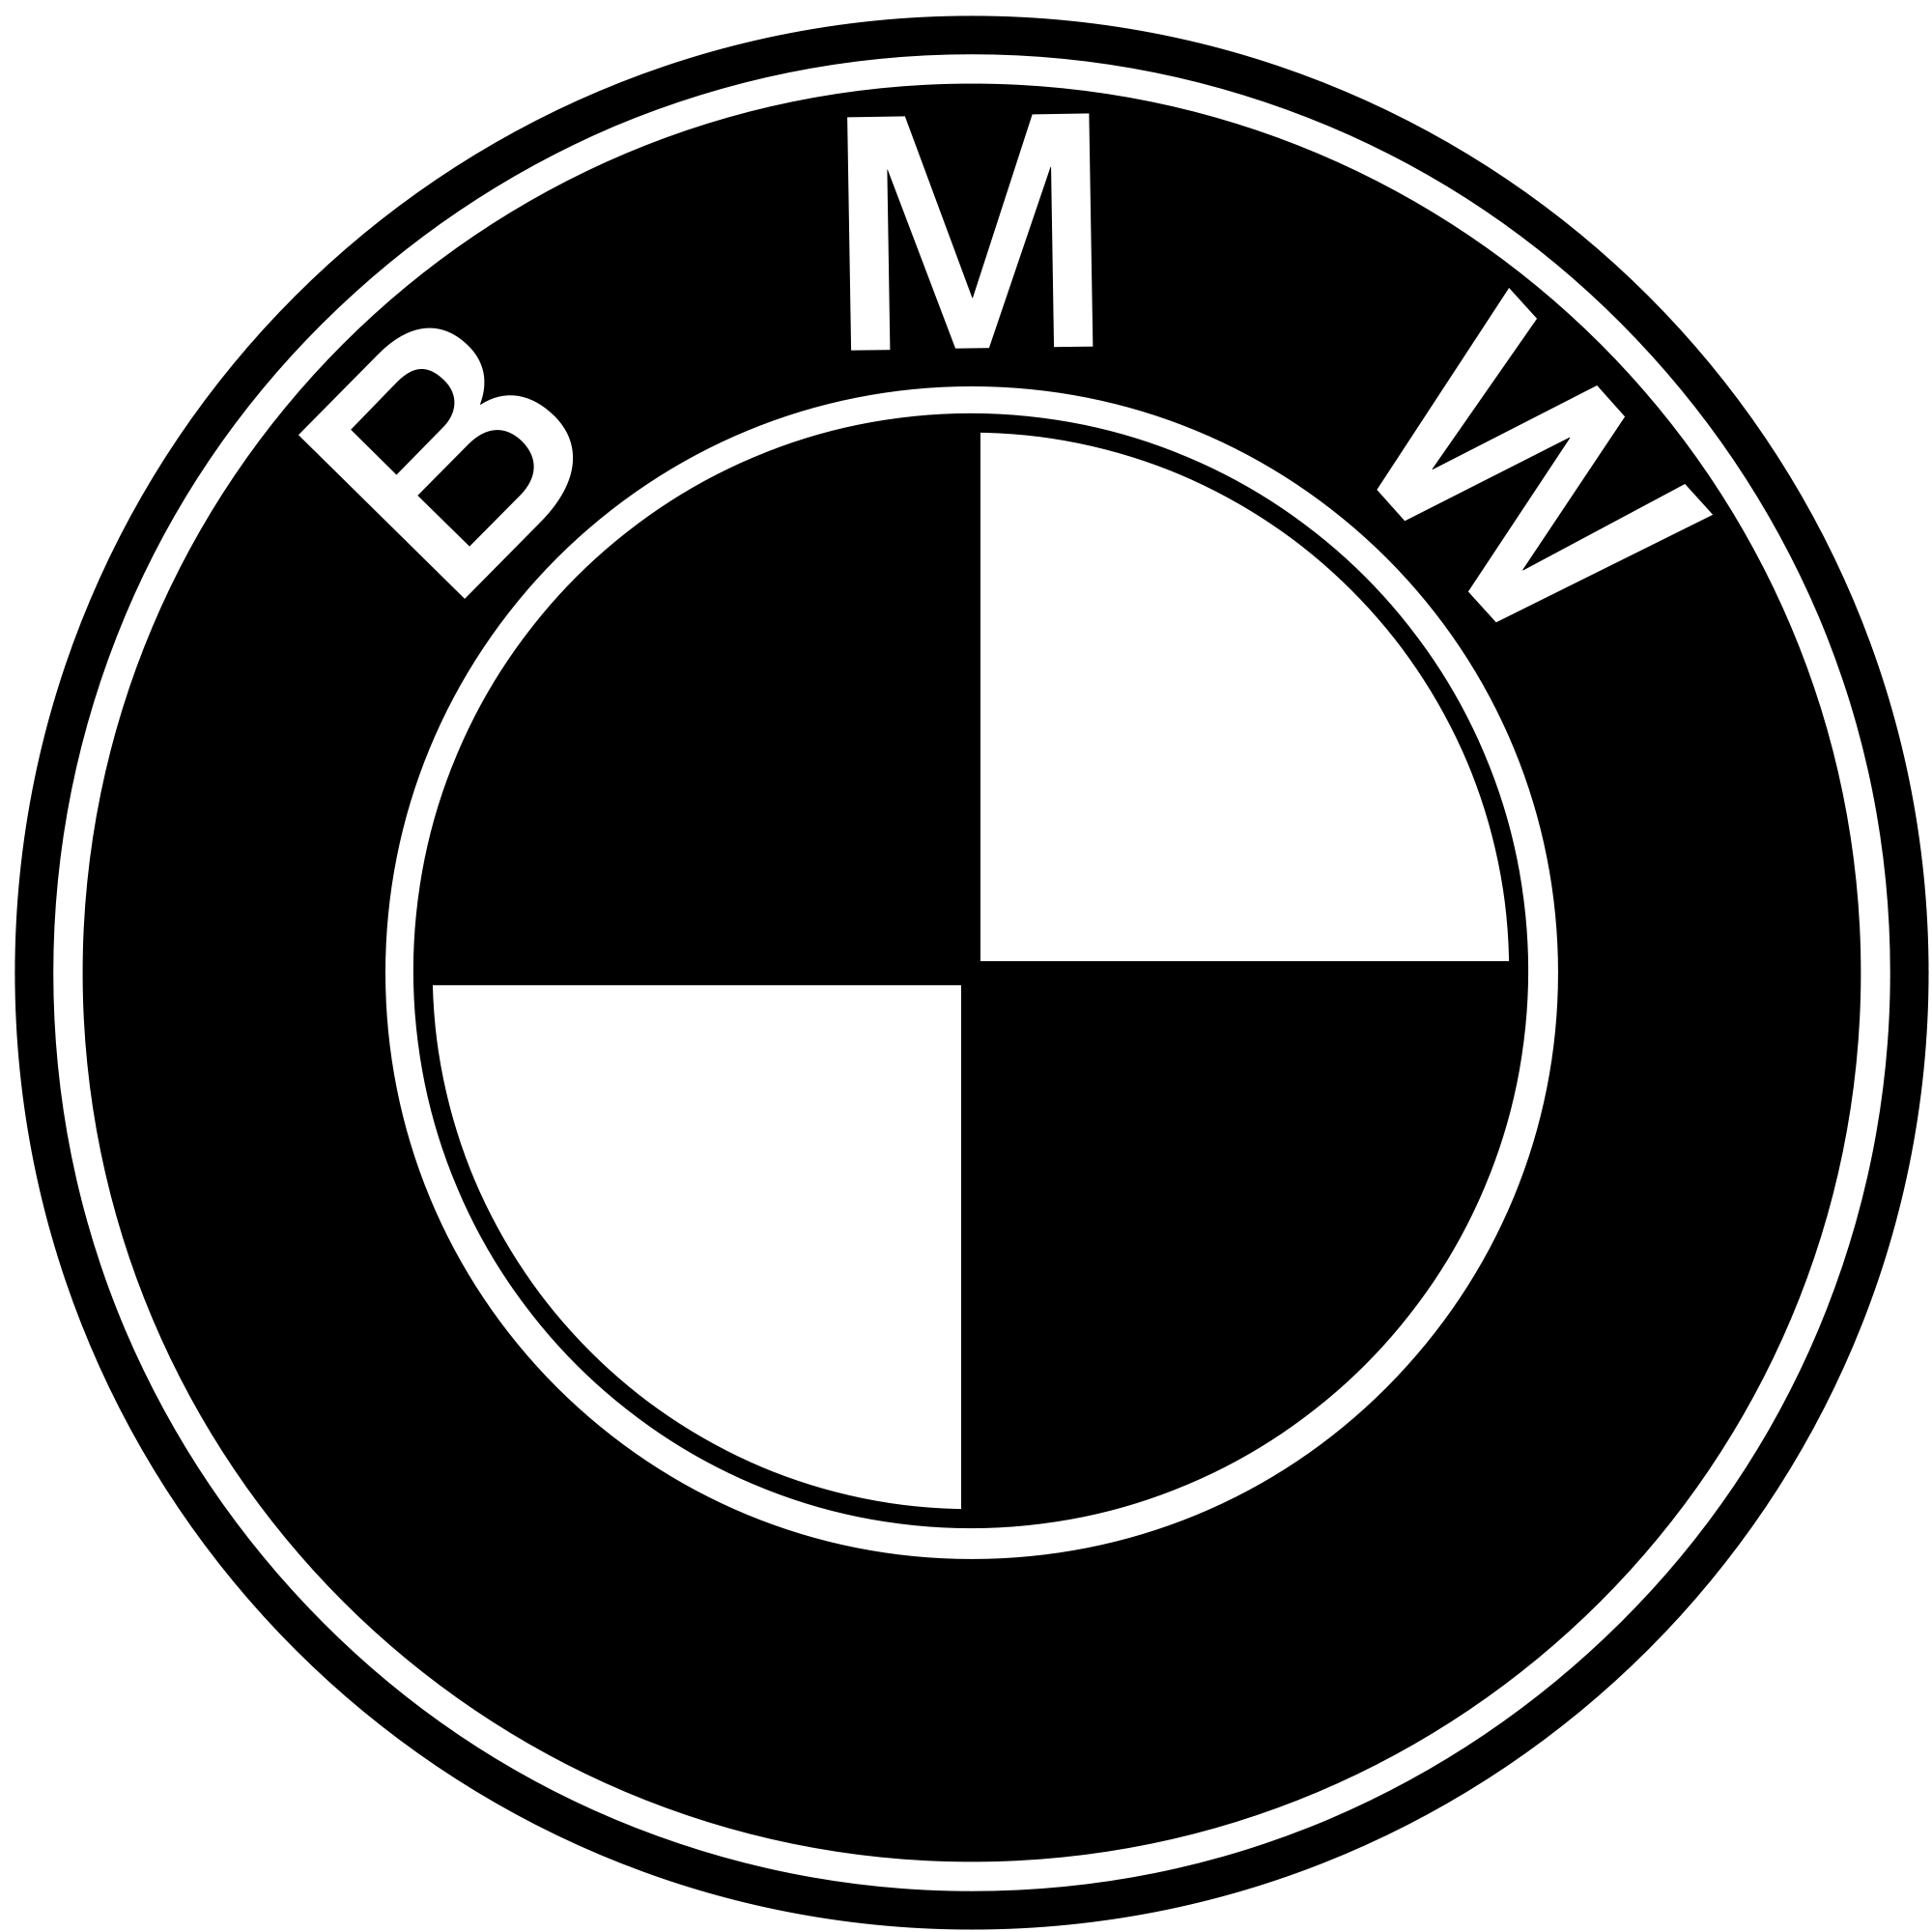 Bmw roundel png. File svg wikimedia commons